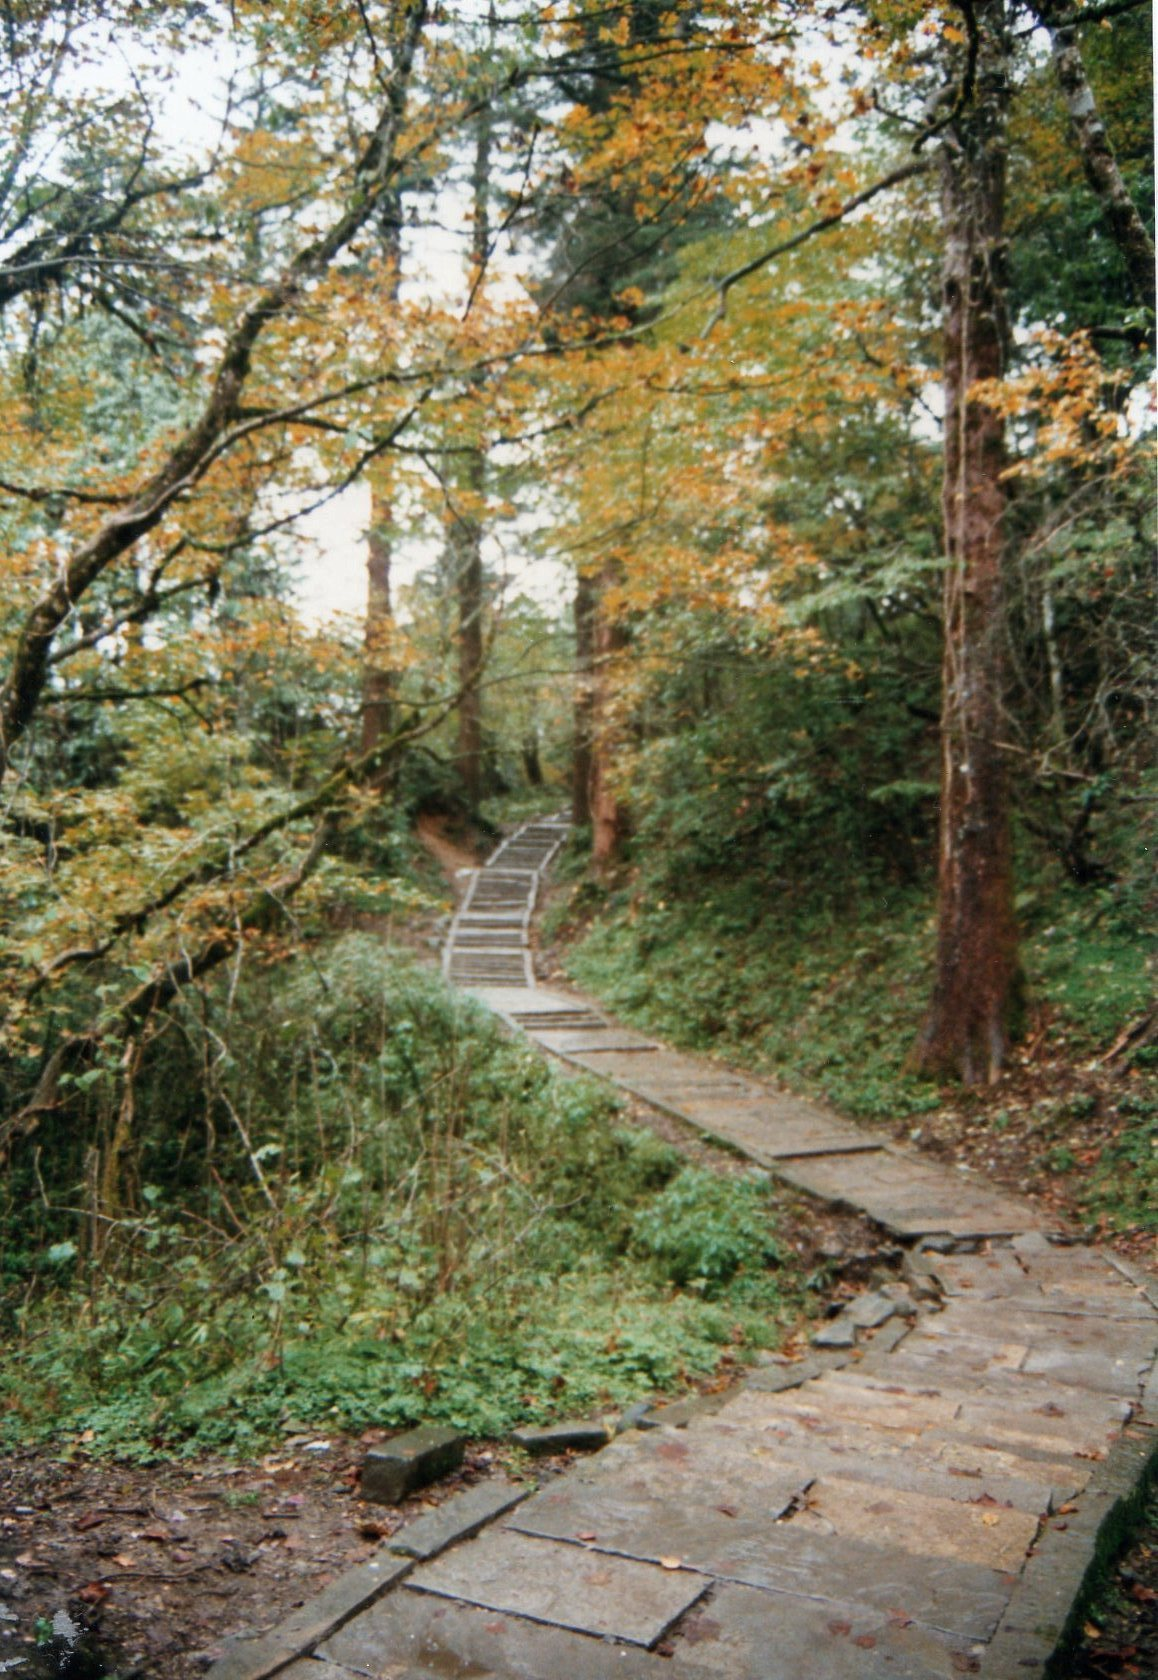 China Sichuan, Emei Shan, Ancient stone path, autumnal forest, Walkopedia